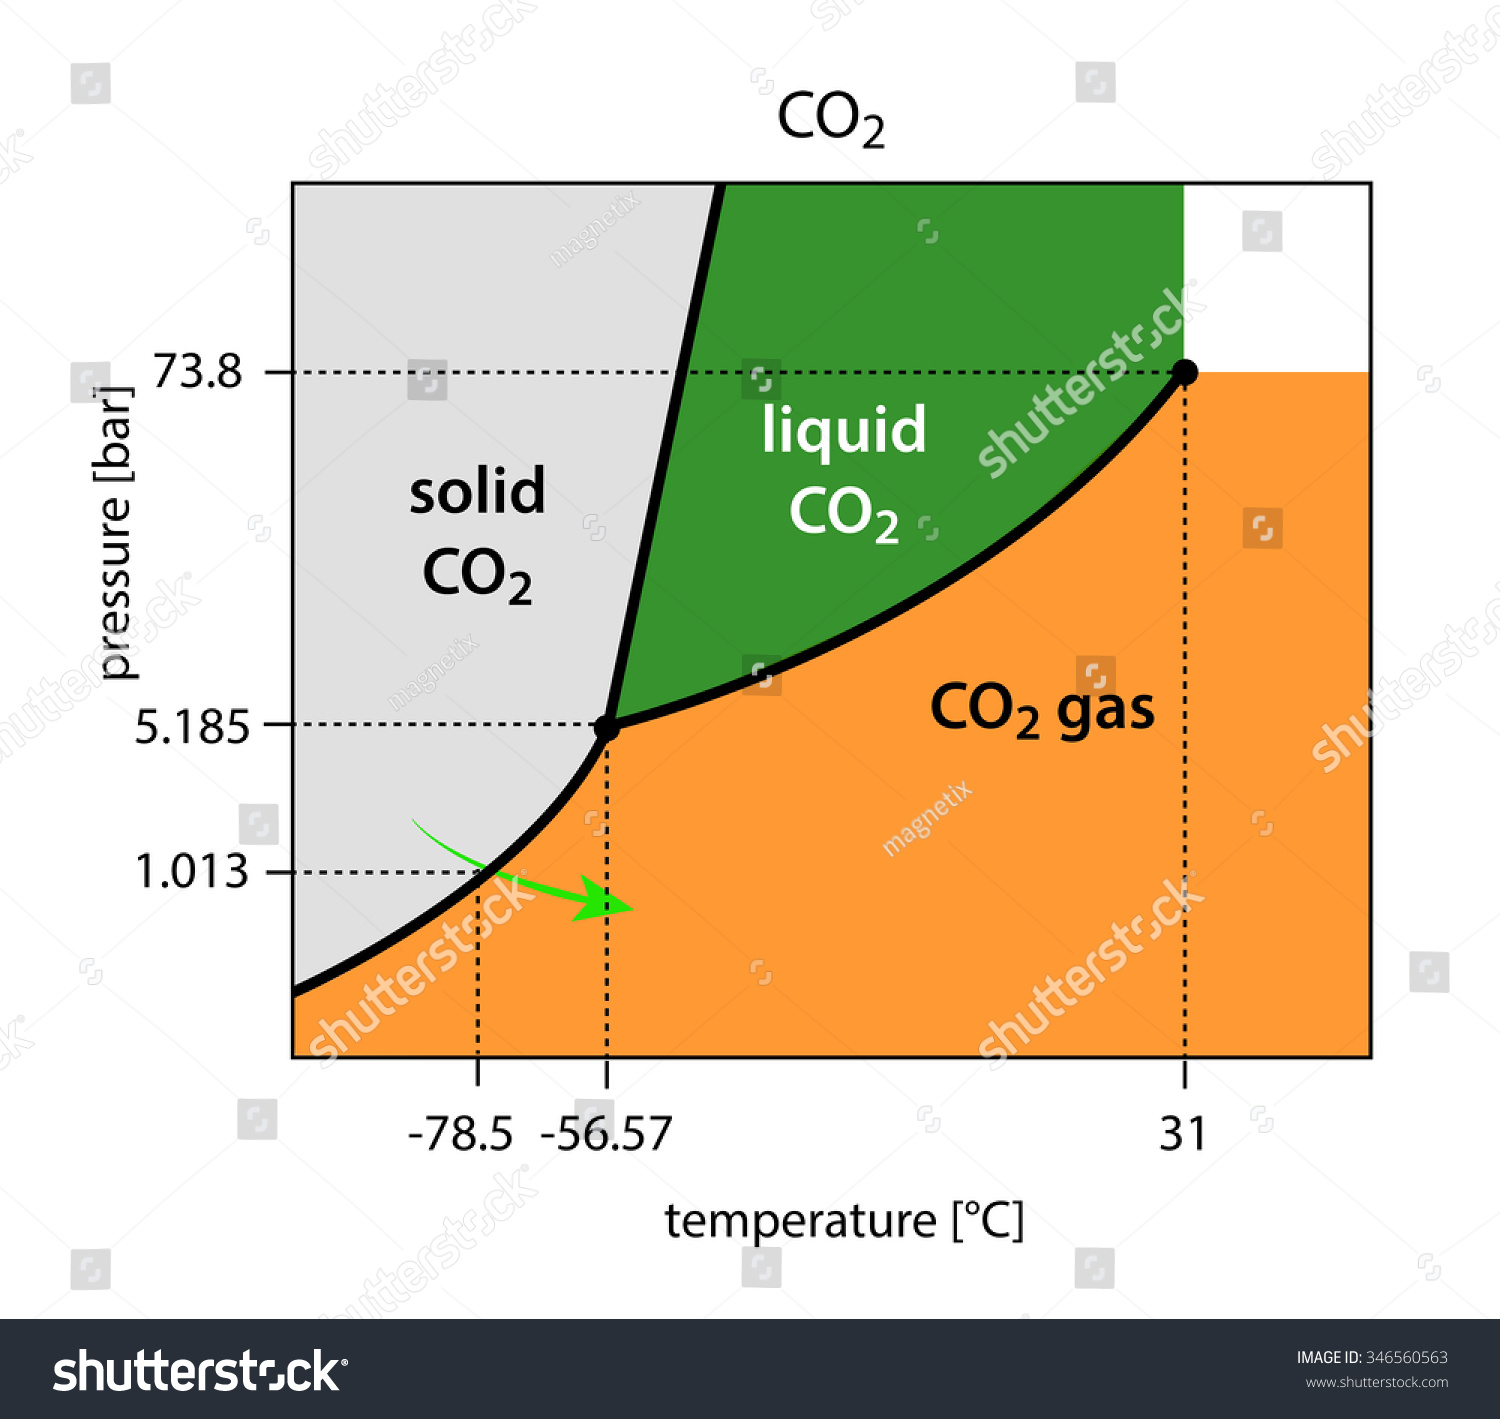 Binary phase diagram co2 carbon dioxide stock illustration binary phase diagram of co2 carbon dioxide pooptronica Gallery